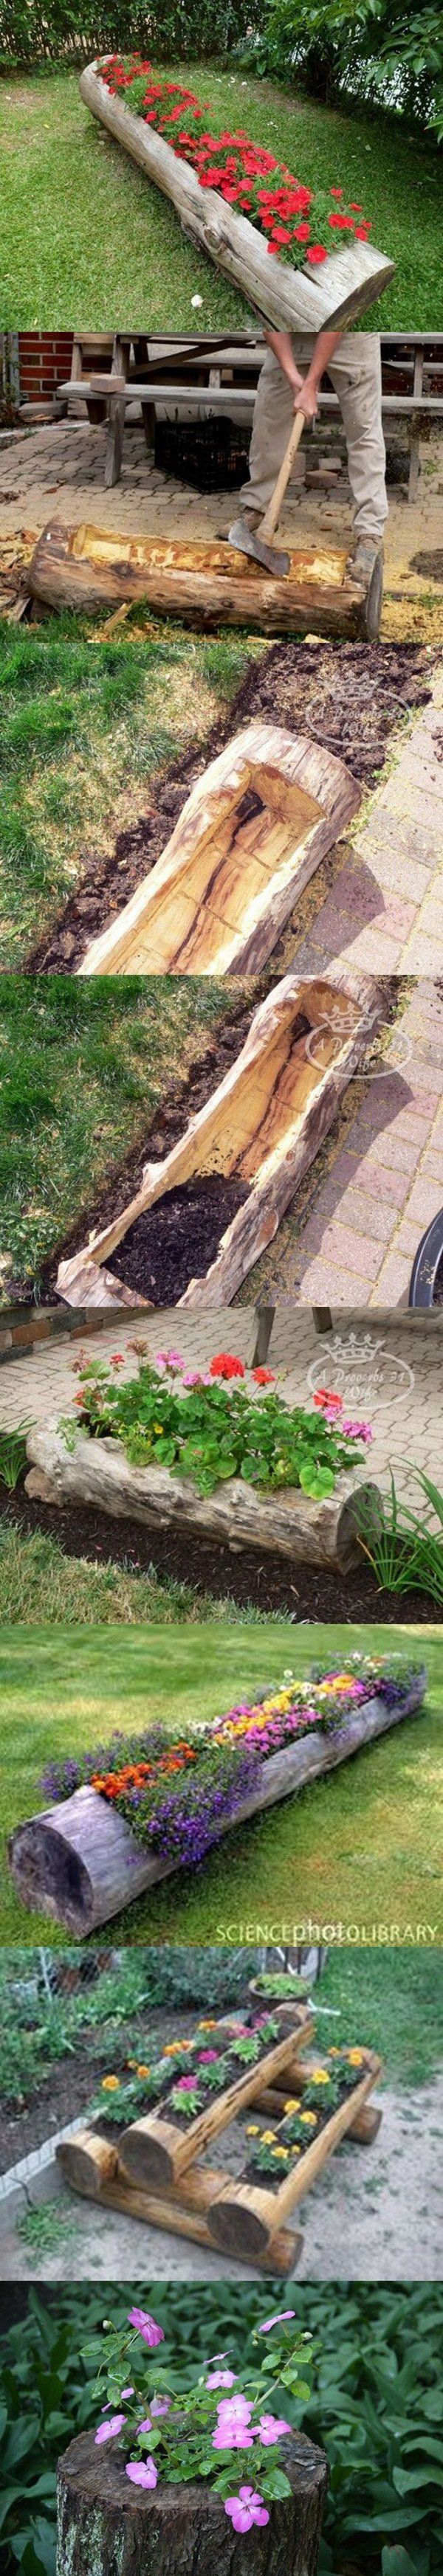 Make a Beautiful DIY Log Garden Planter